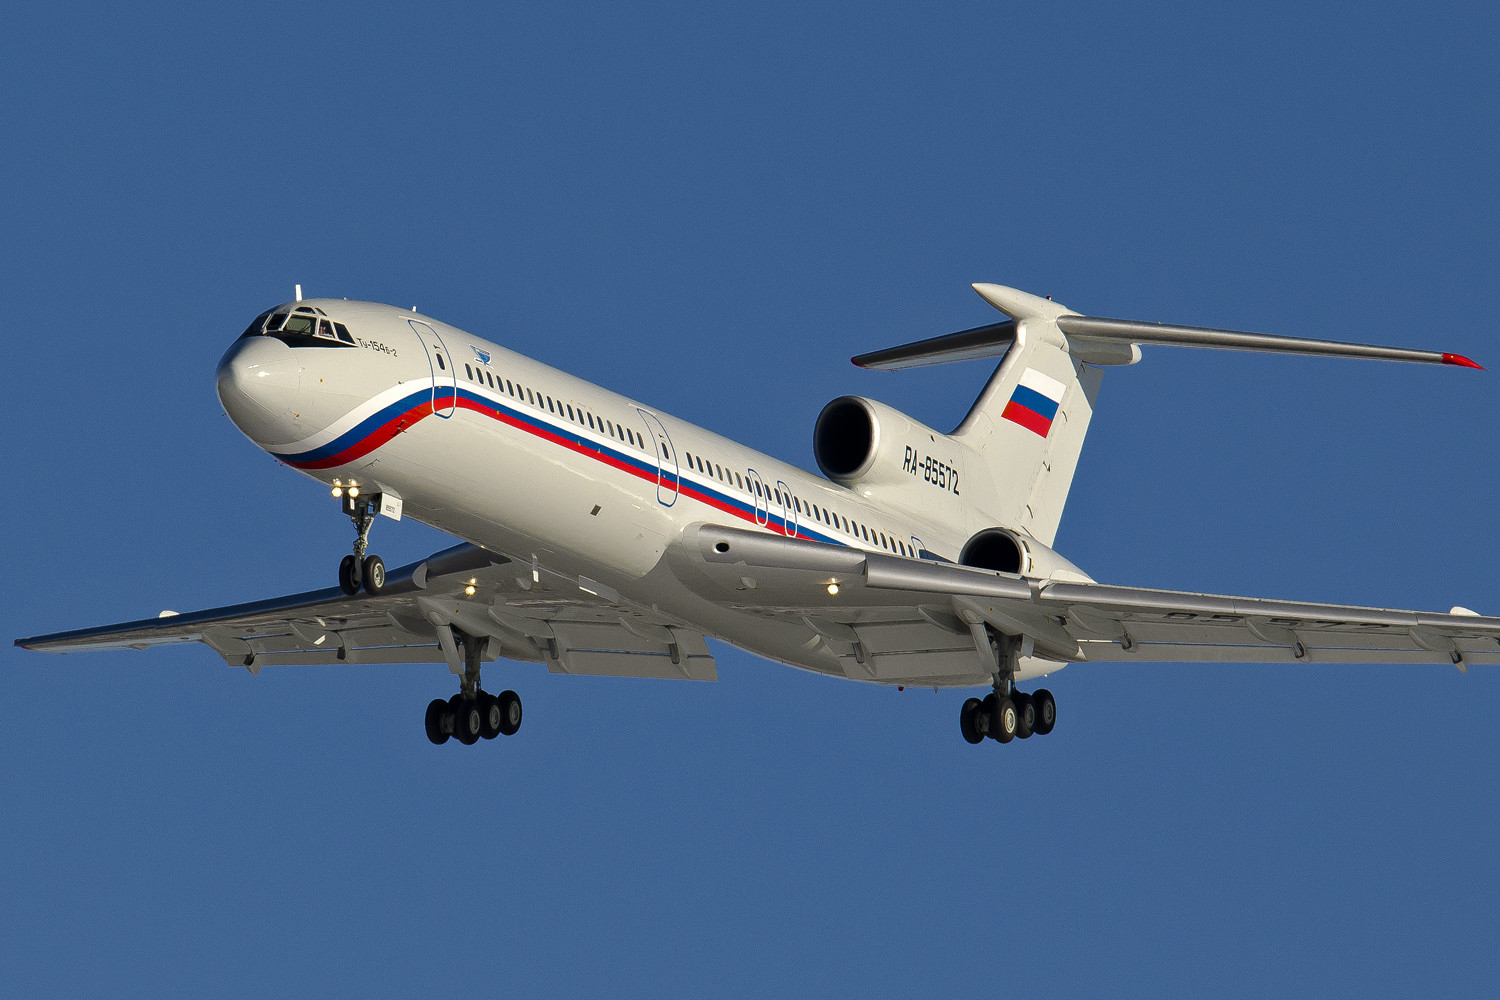 Tupolev Tu-154B-2 (RA-85572) on final approach at Chkalovsky